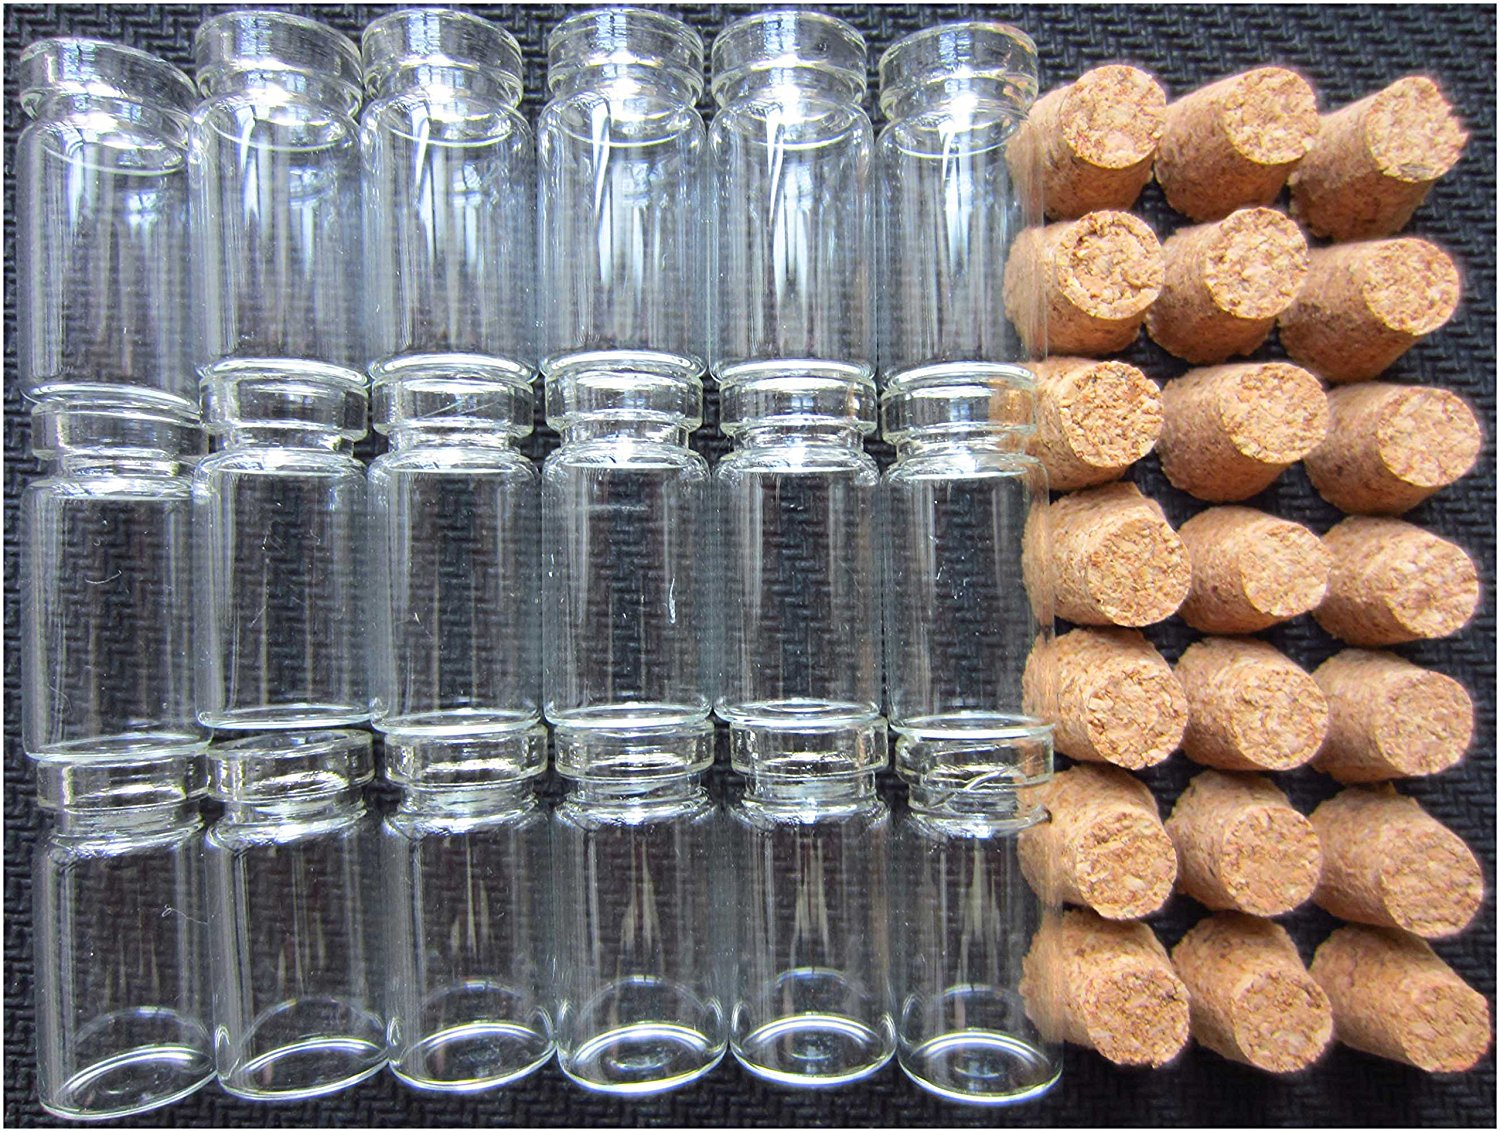 LeBeila 1ml Mini Glass Jars With Cork Stoppers Tiny Glass Bottles With Cork Lids For Messages, Wedding Wish, Jewelry, Party Favors, DIY, Arts & Crafts, Projects, Decoration (50pcs, 1 ml)